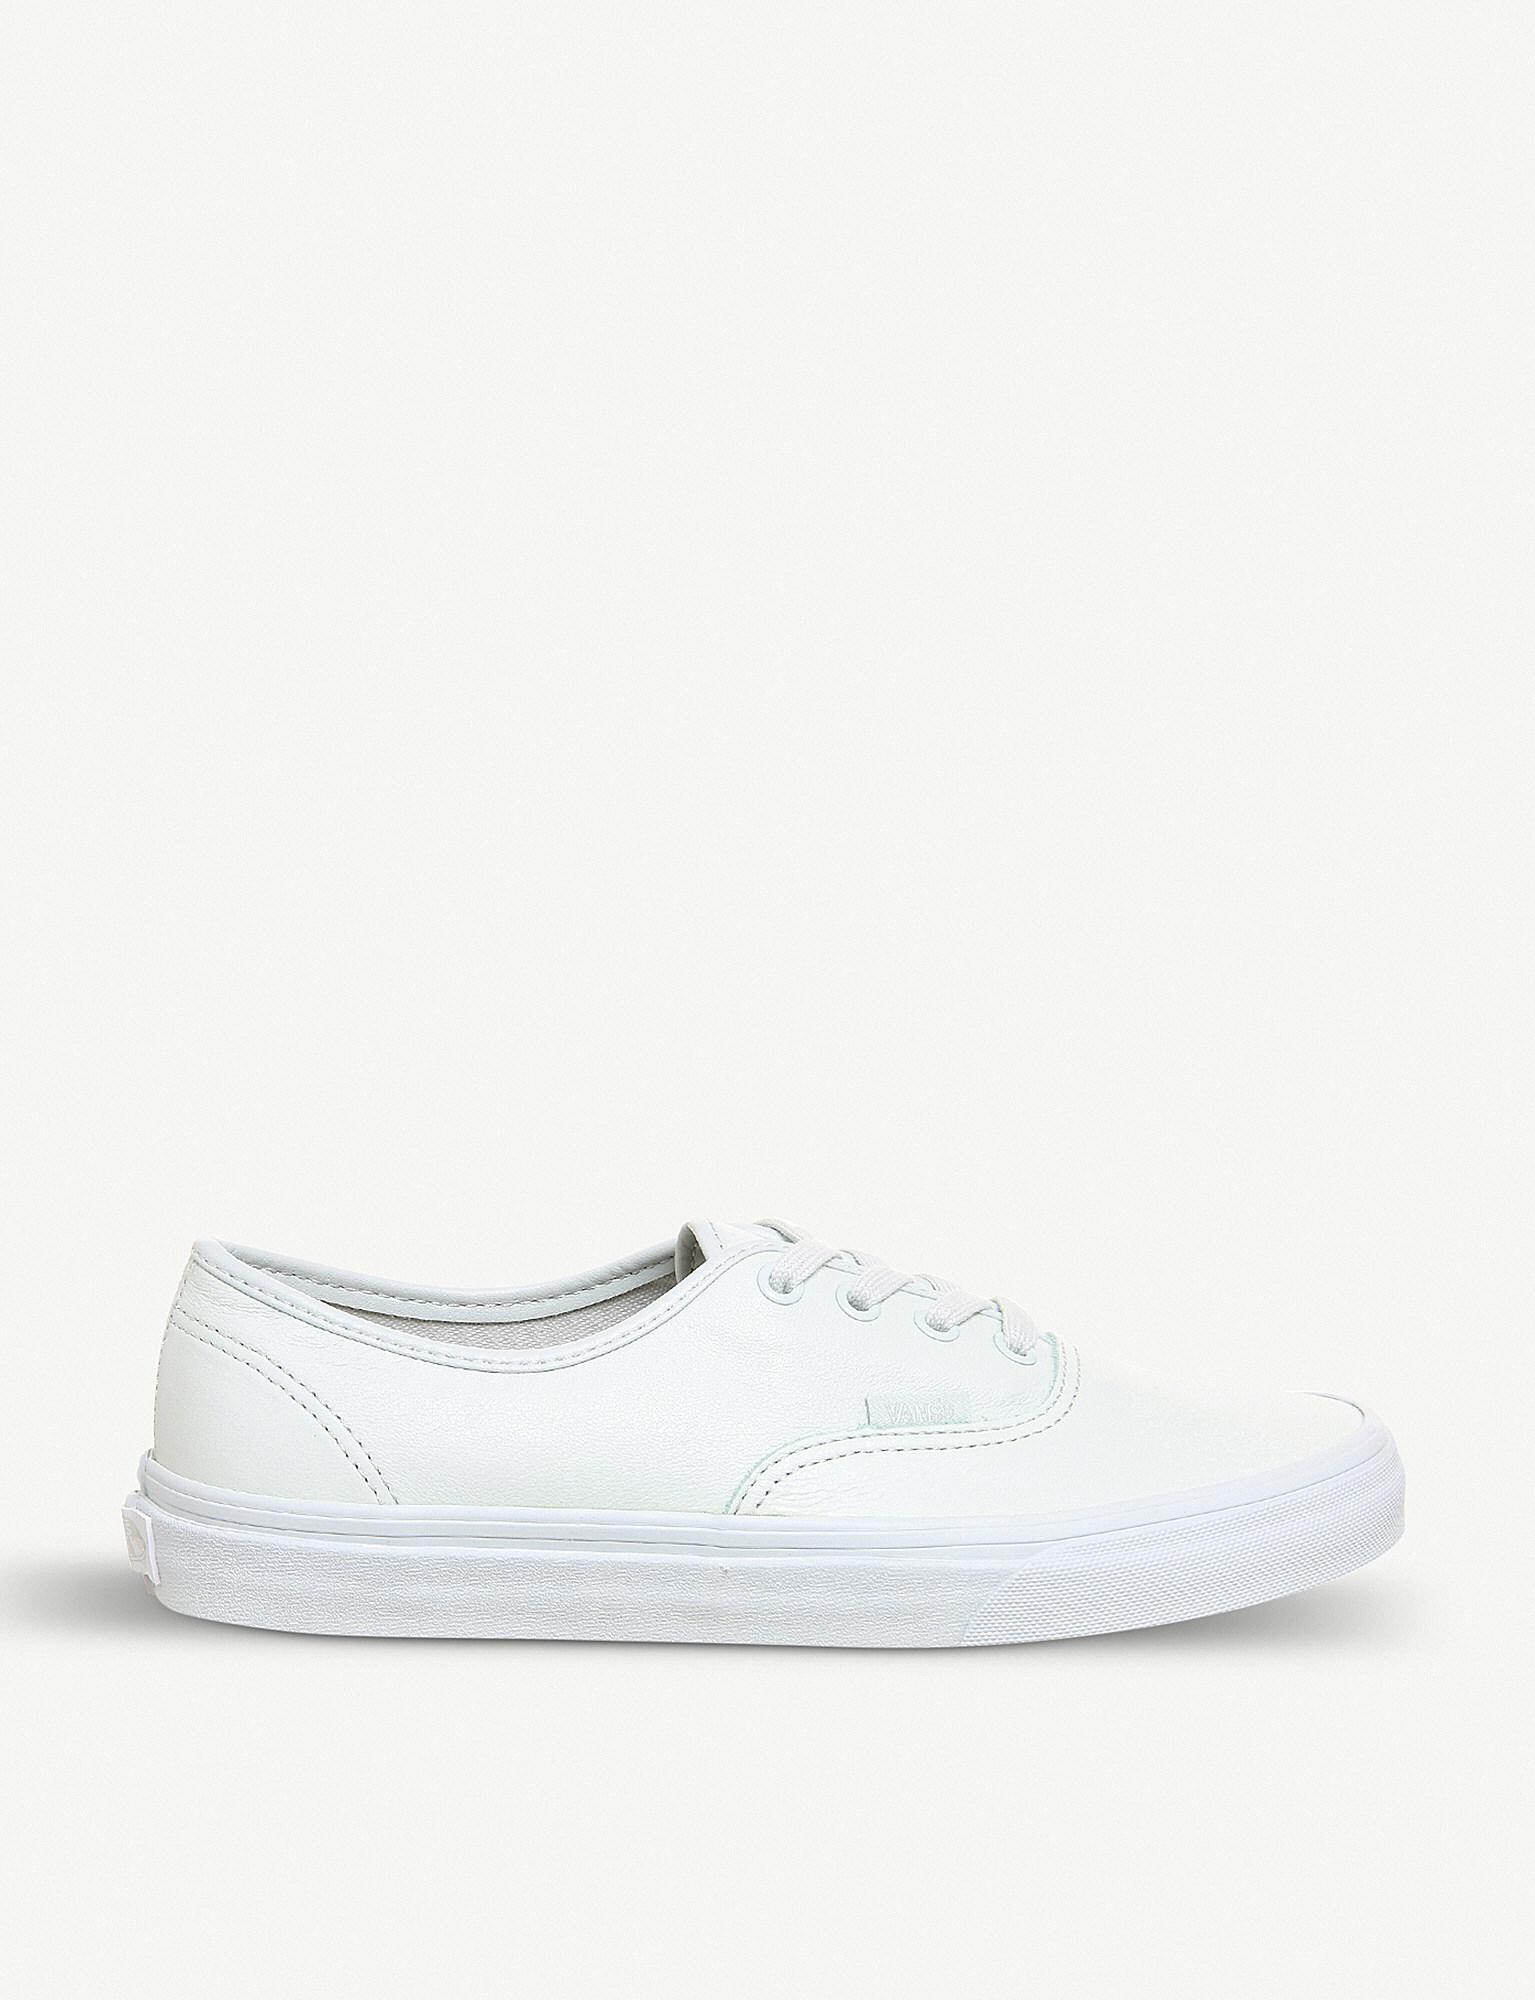 b93b72f0cab3 Lyst - Vans Era Leather Trainers in White for Men